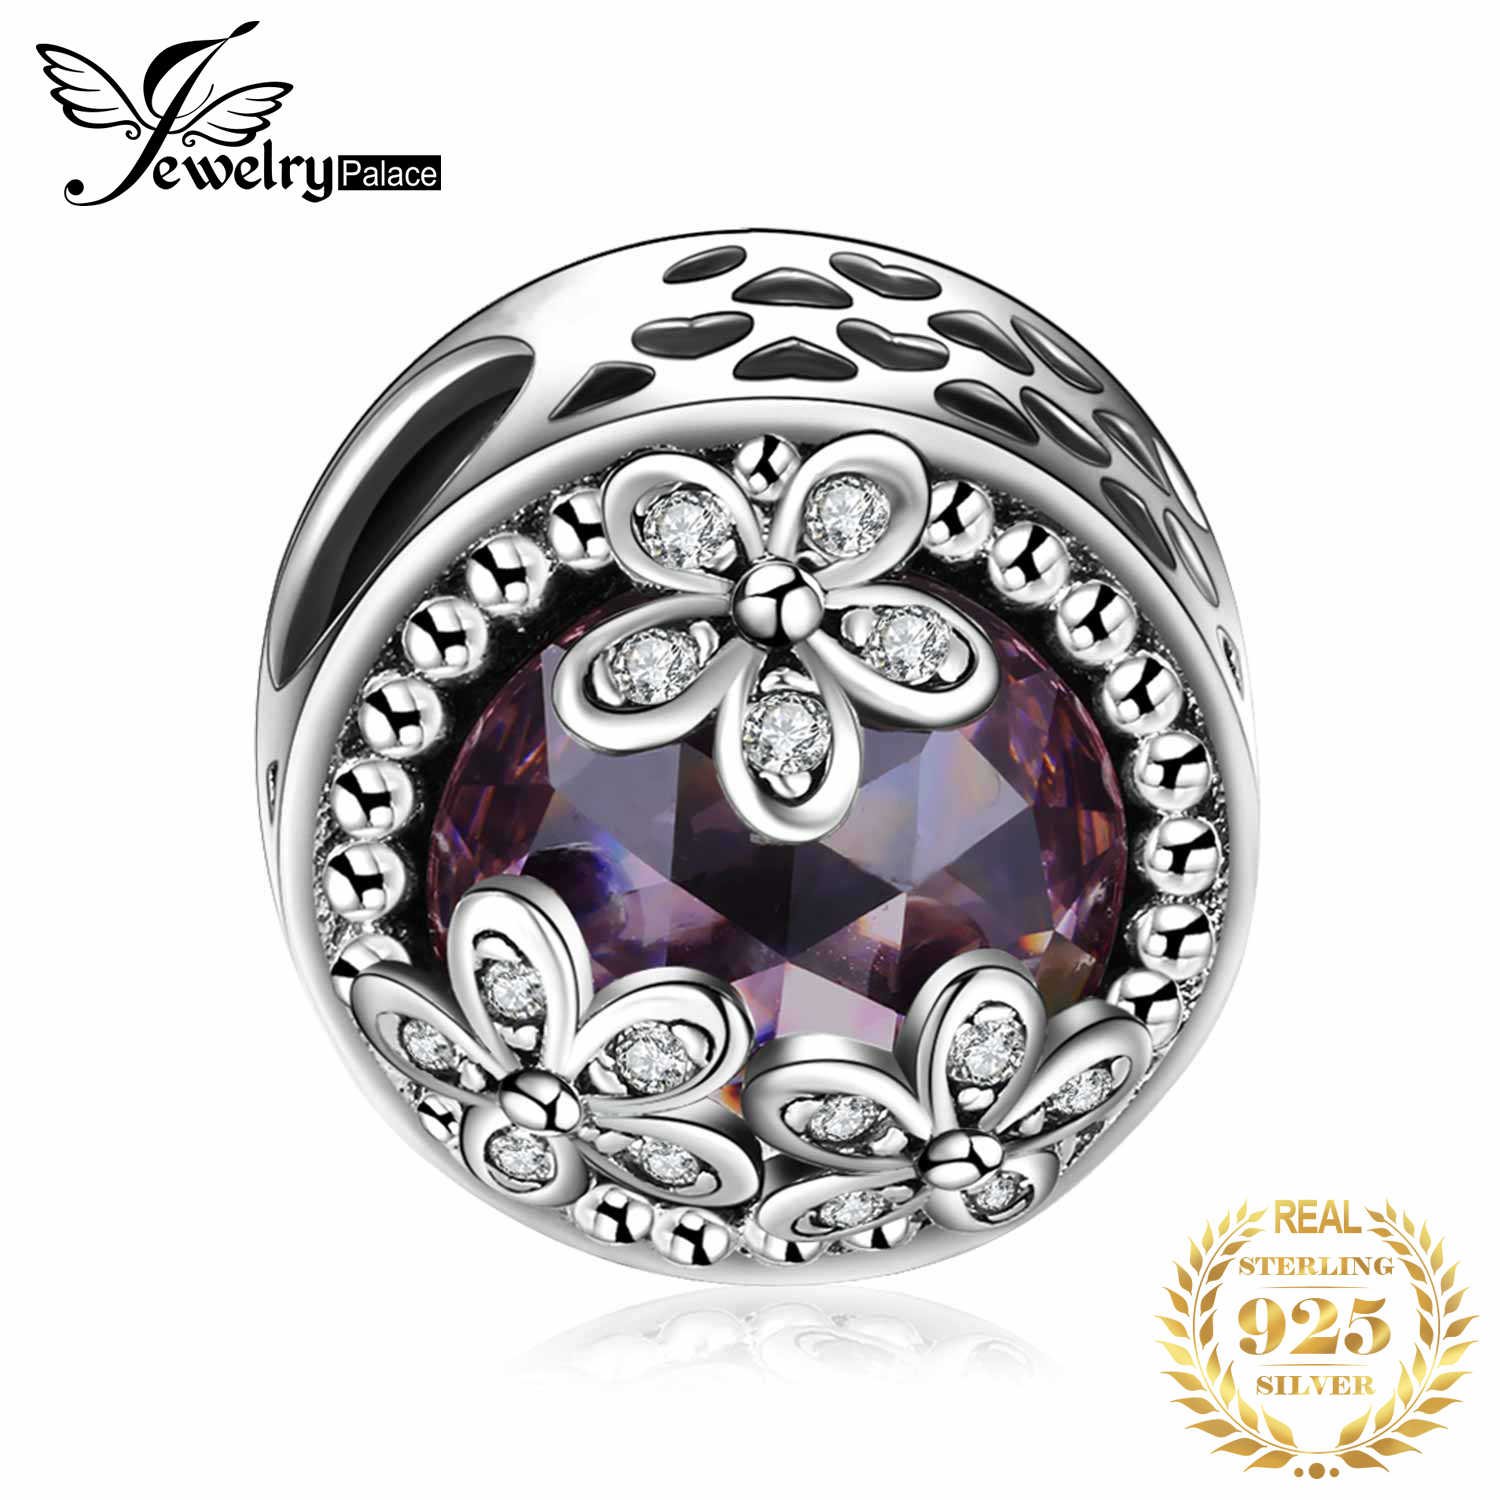 JewelryPalace Authentic 925 Sterling Silver Beads Pendenti E Ciondoli Argento 925 Originale Per Il Braccialetto In Argento 925 originale Per Monili Che Fanno